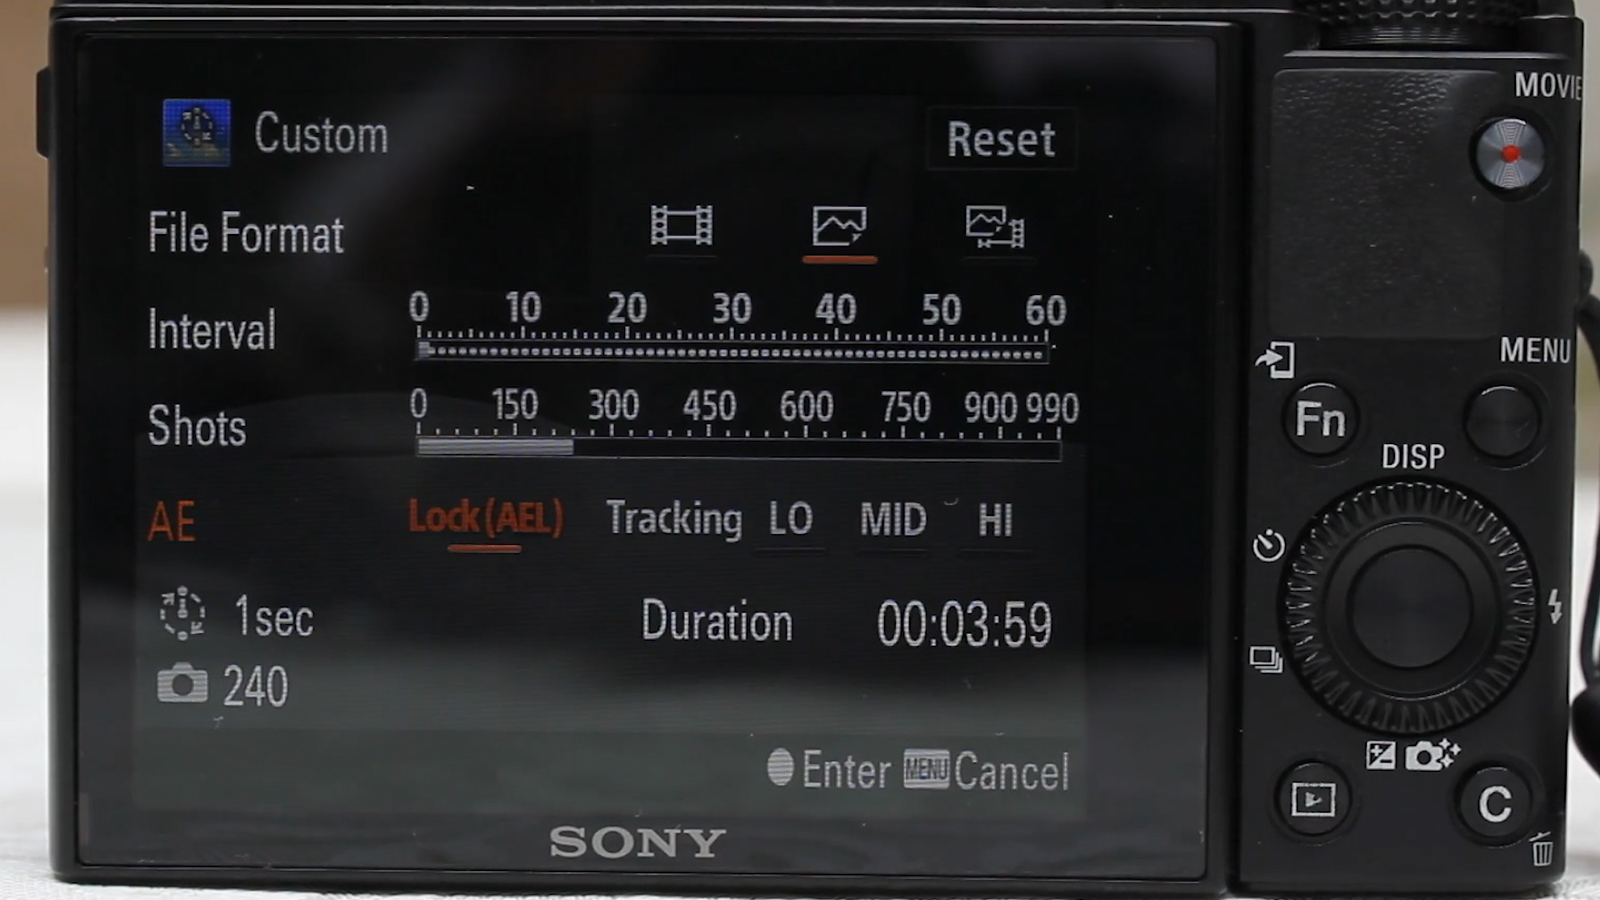 sony rx100 iii timelapse program setup